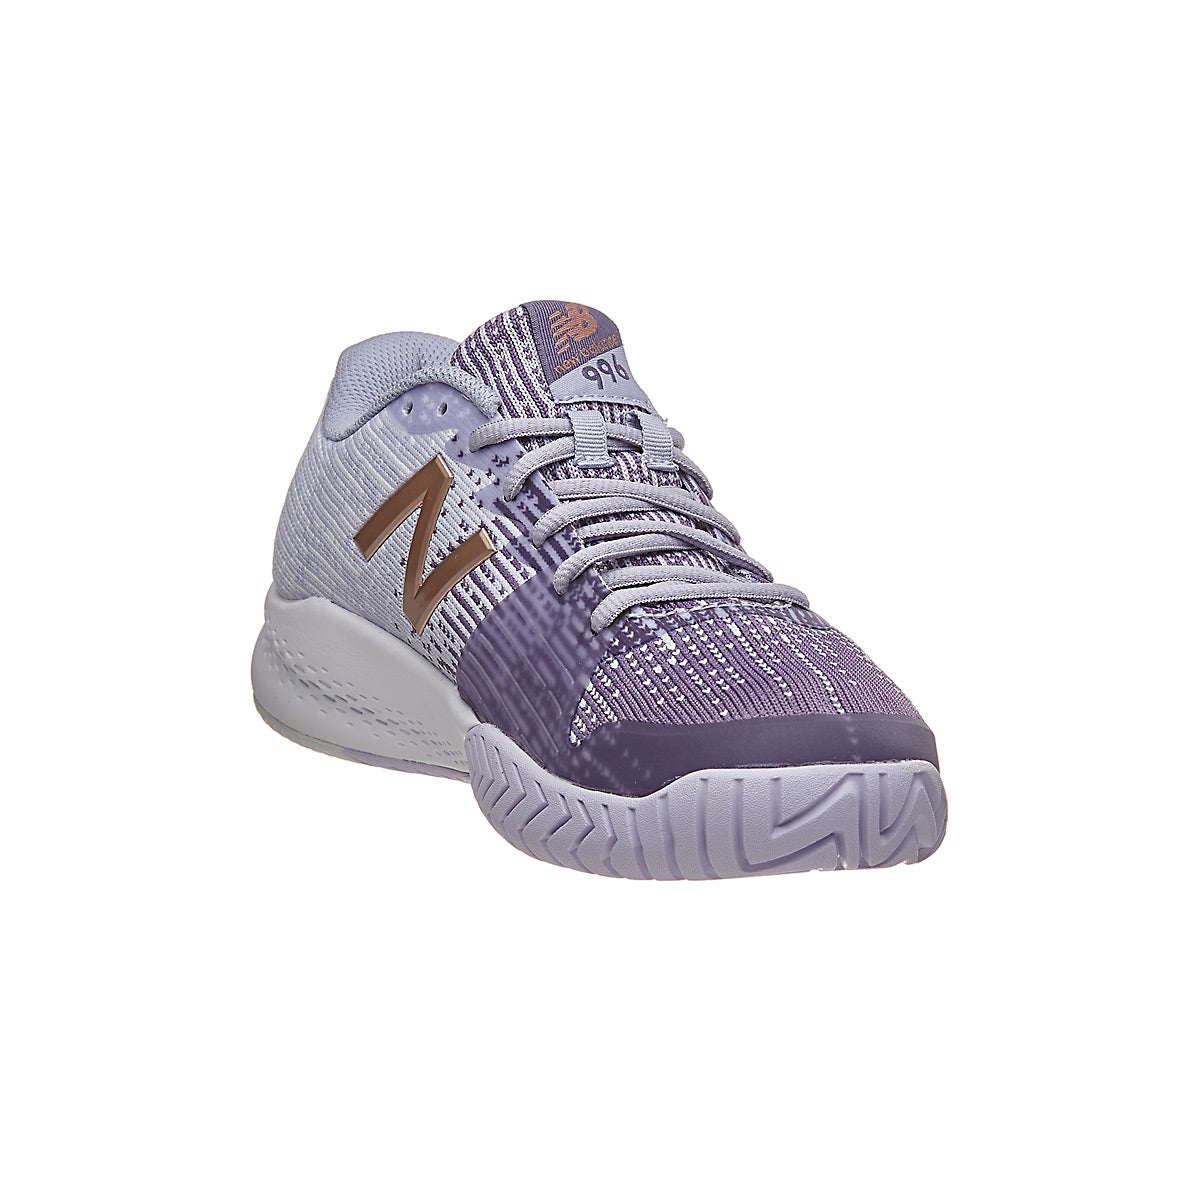 reputable site d4a8c 1a0ba ... italy new balance wc 996v3 d purple gold womens shoe 360 view. 8cd40  24686